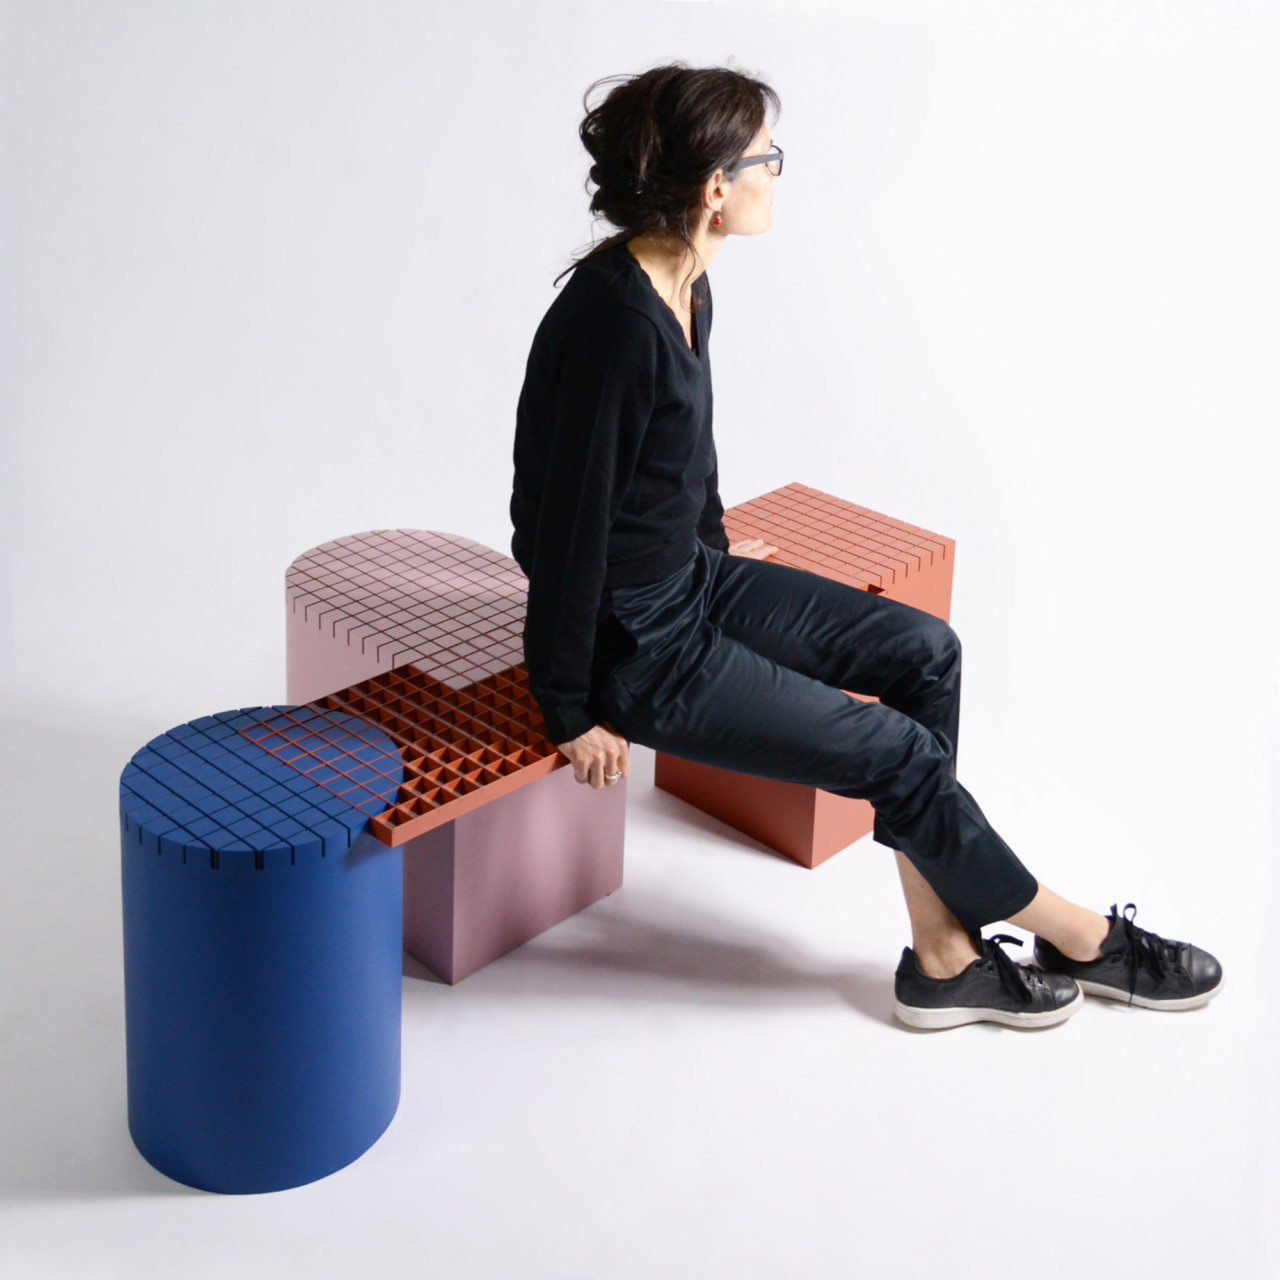 Grid Benches are created for both indoors and outdoors, for public and private spaces and come in various bold colors